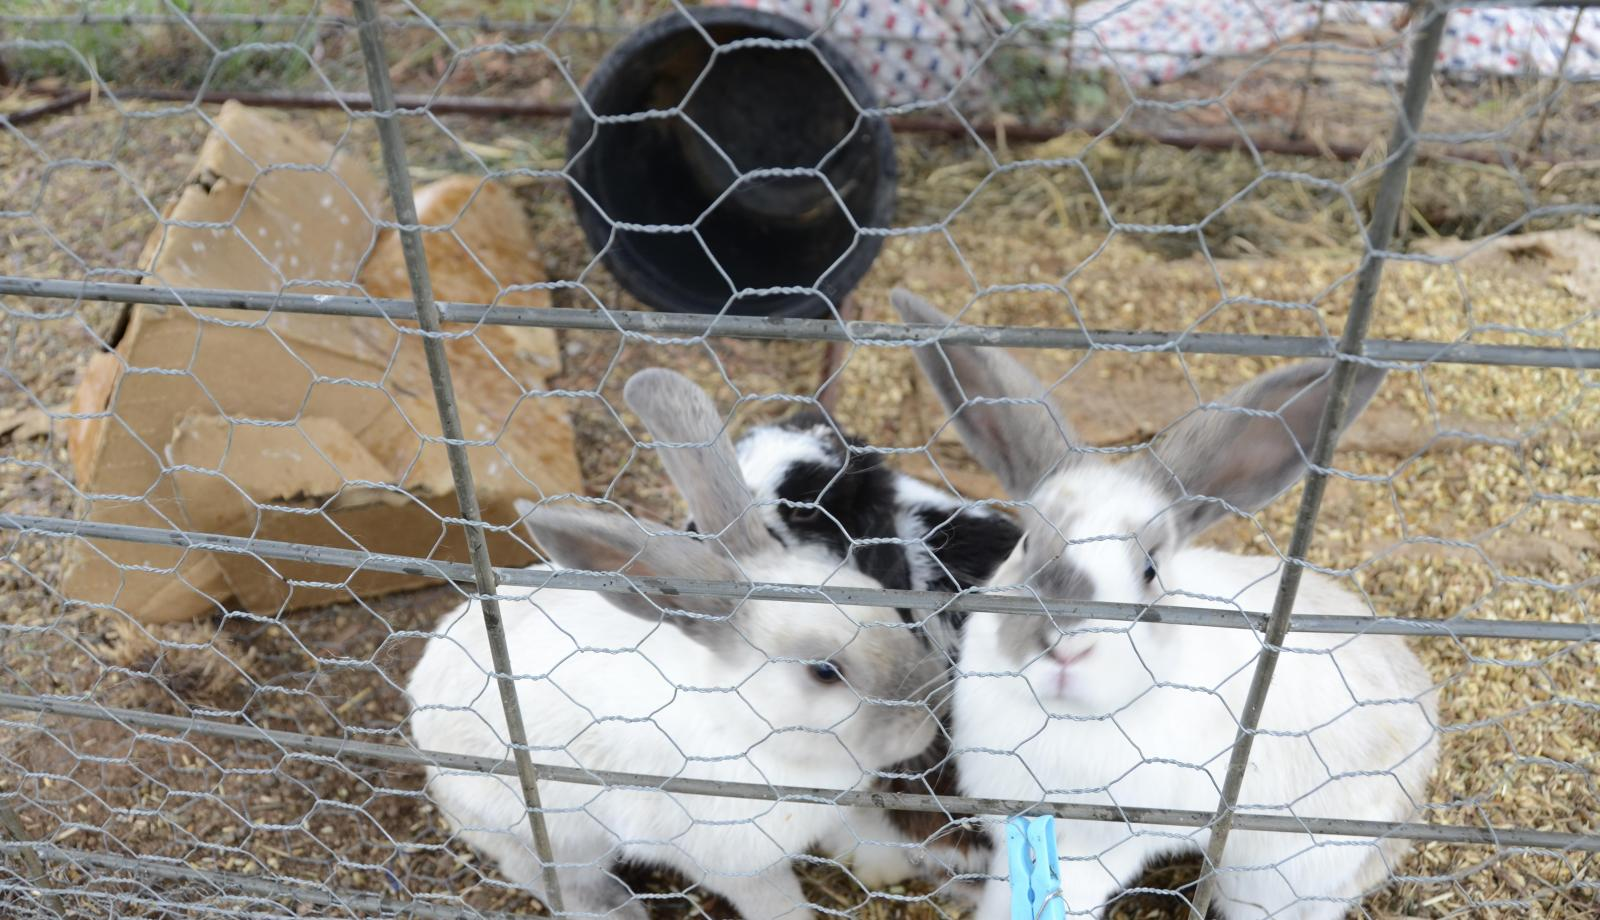 Vaccinate to protect rabbits